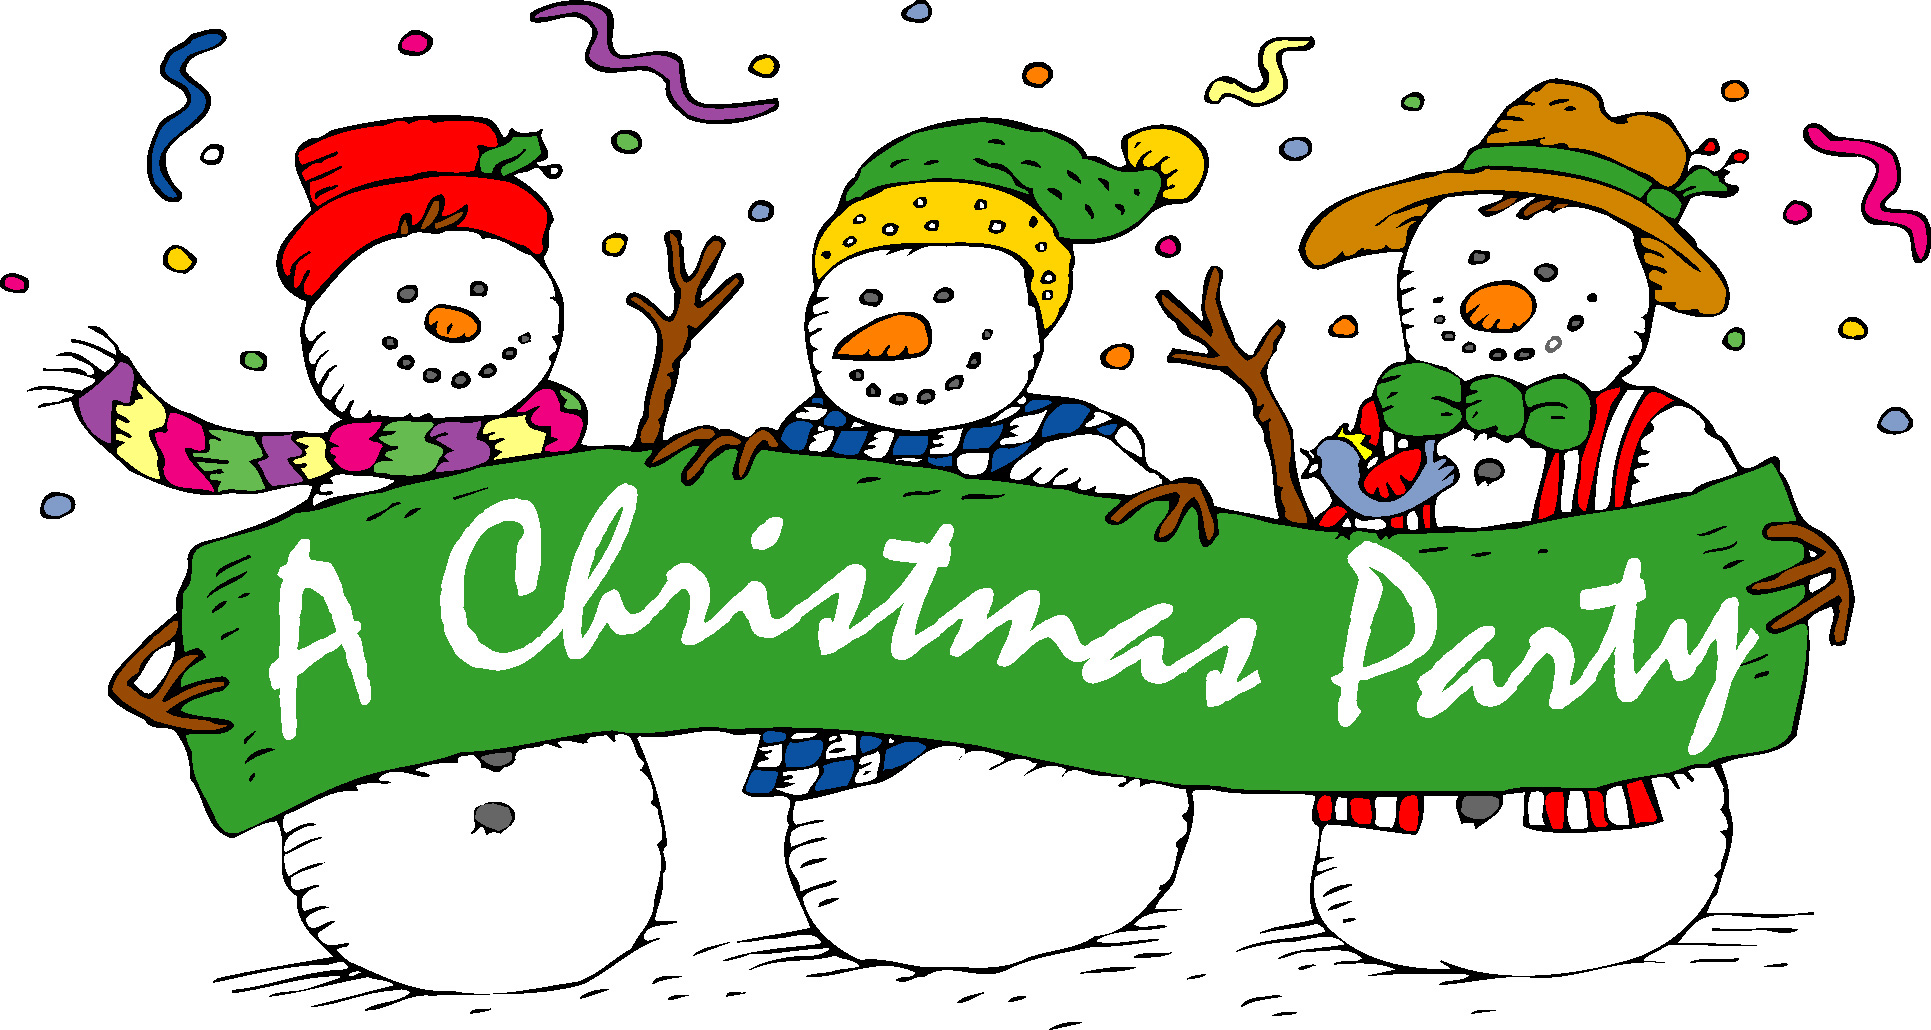 Christmas party images clip art.